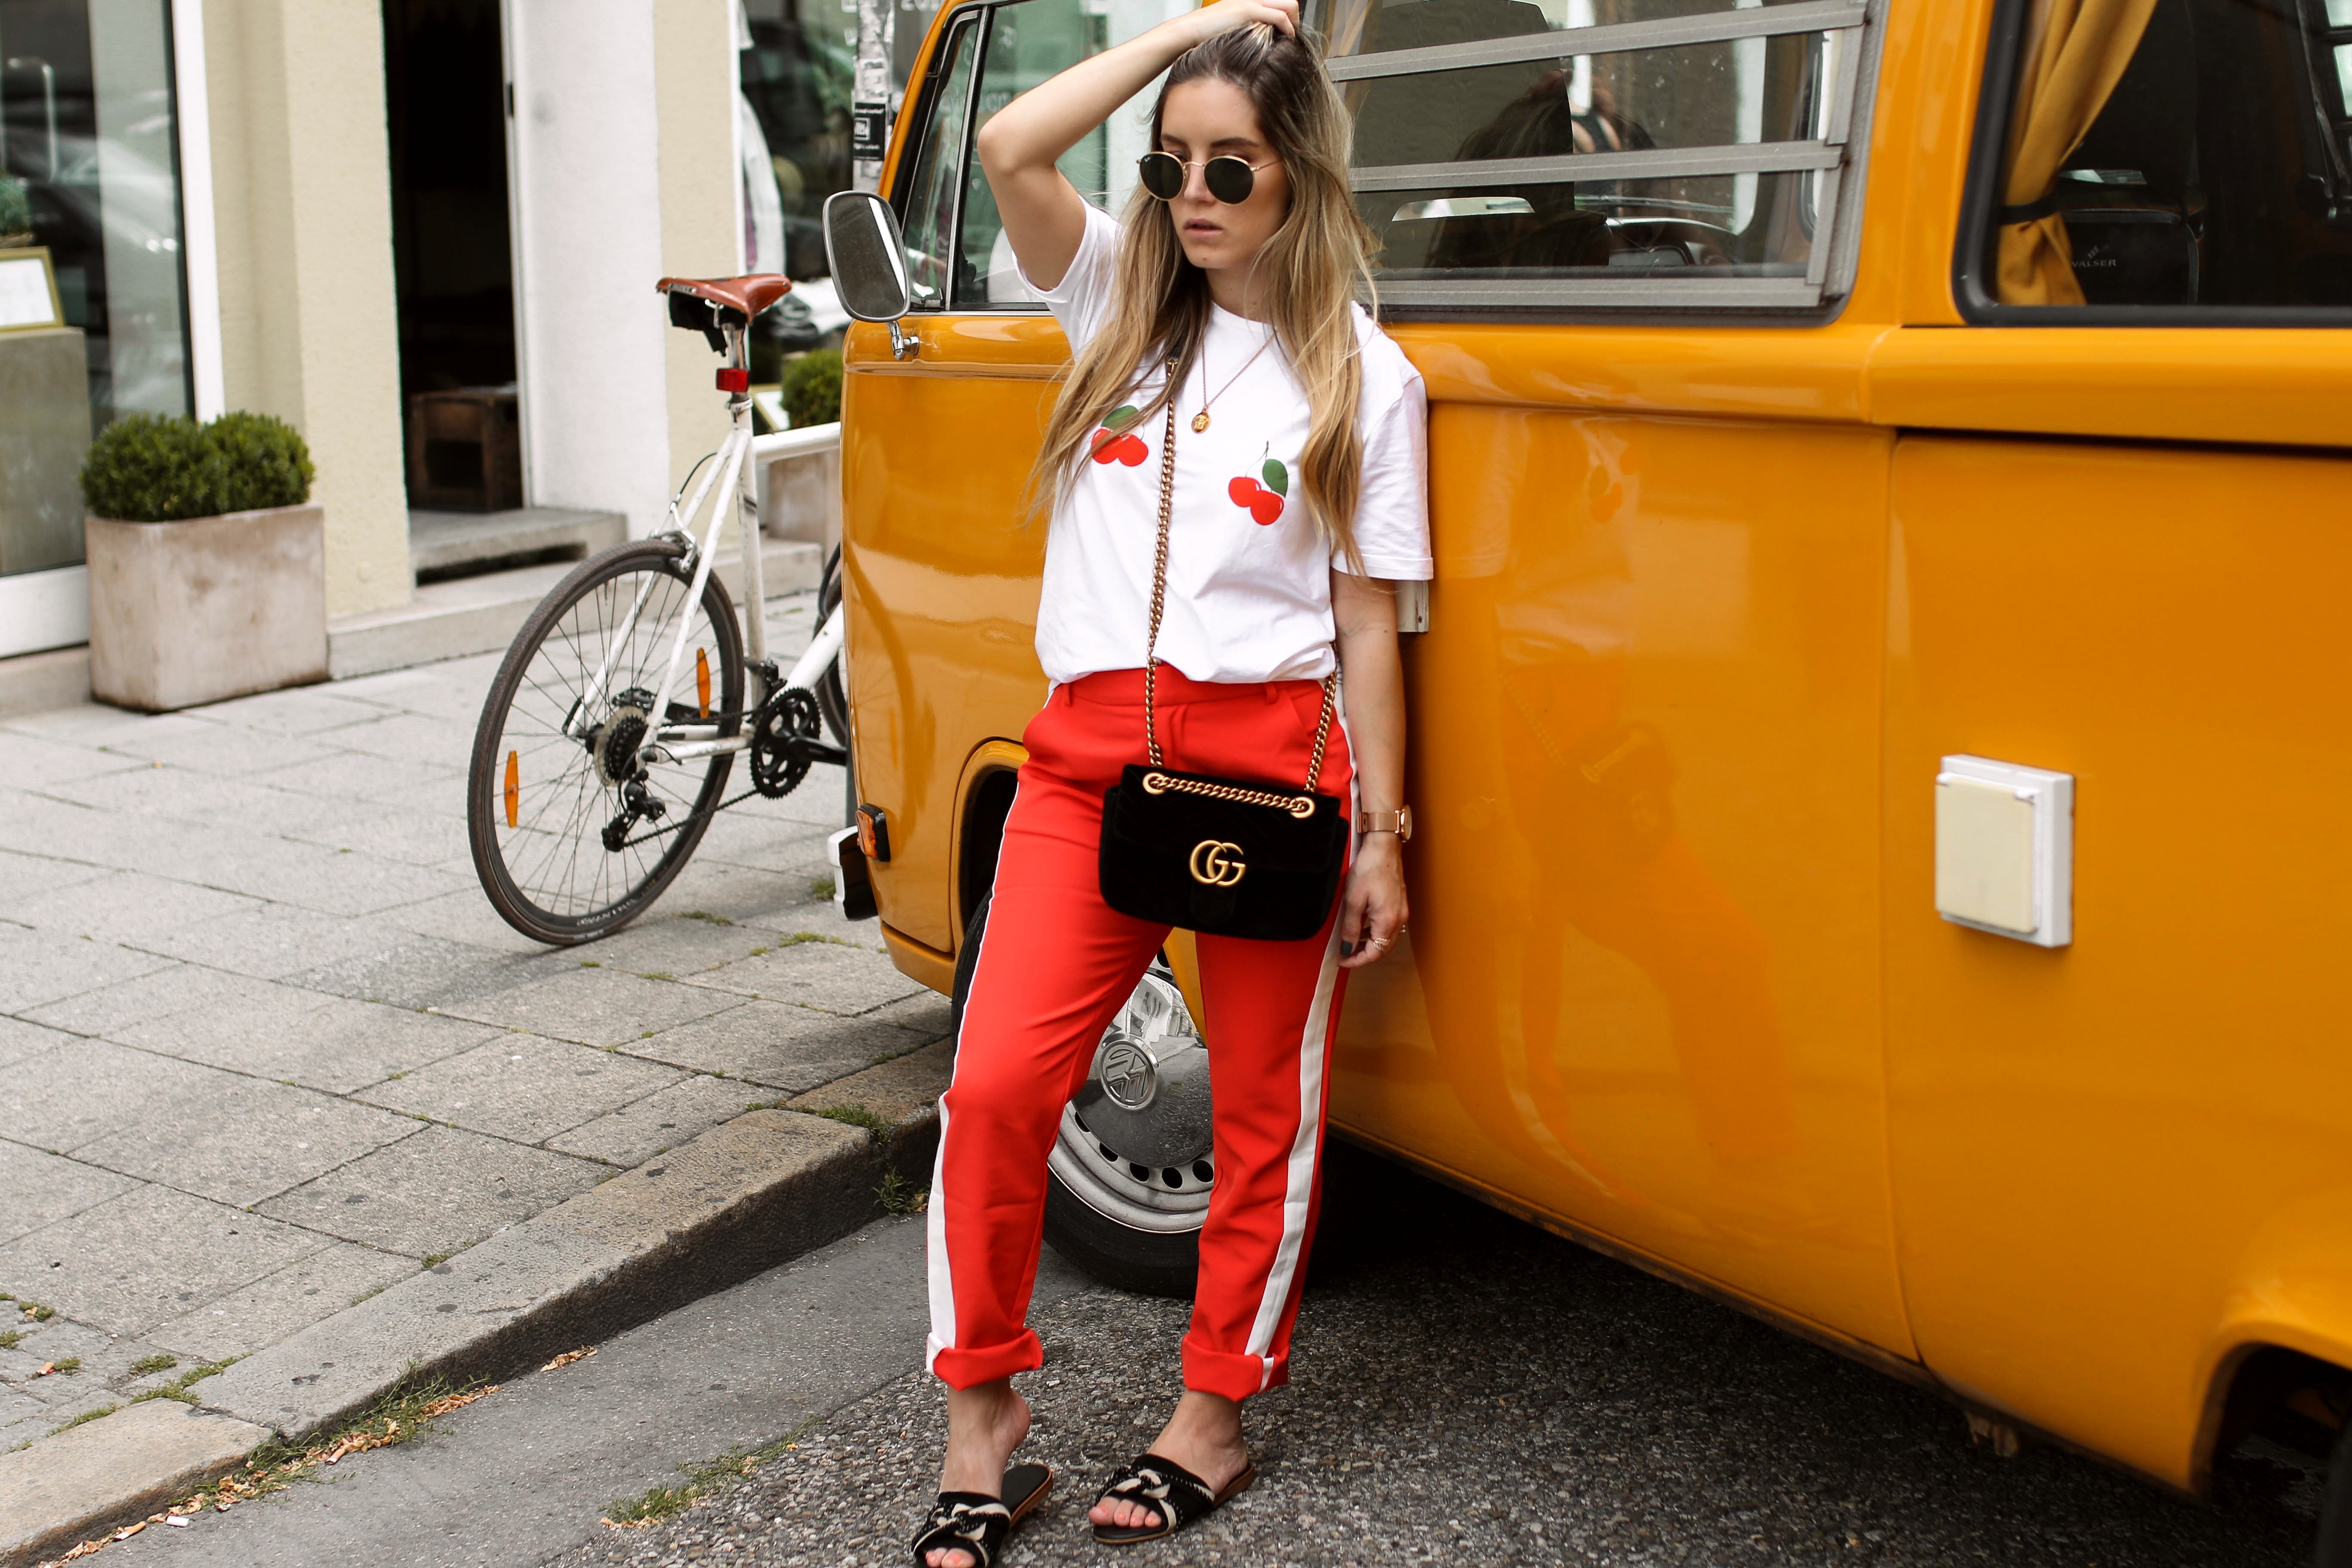 cherry shirt loavies fashionblogger_de streetstyle gucci bag marmont vw bully retro